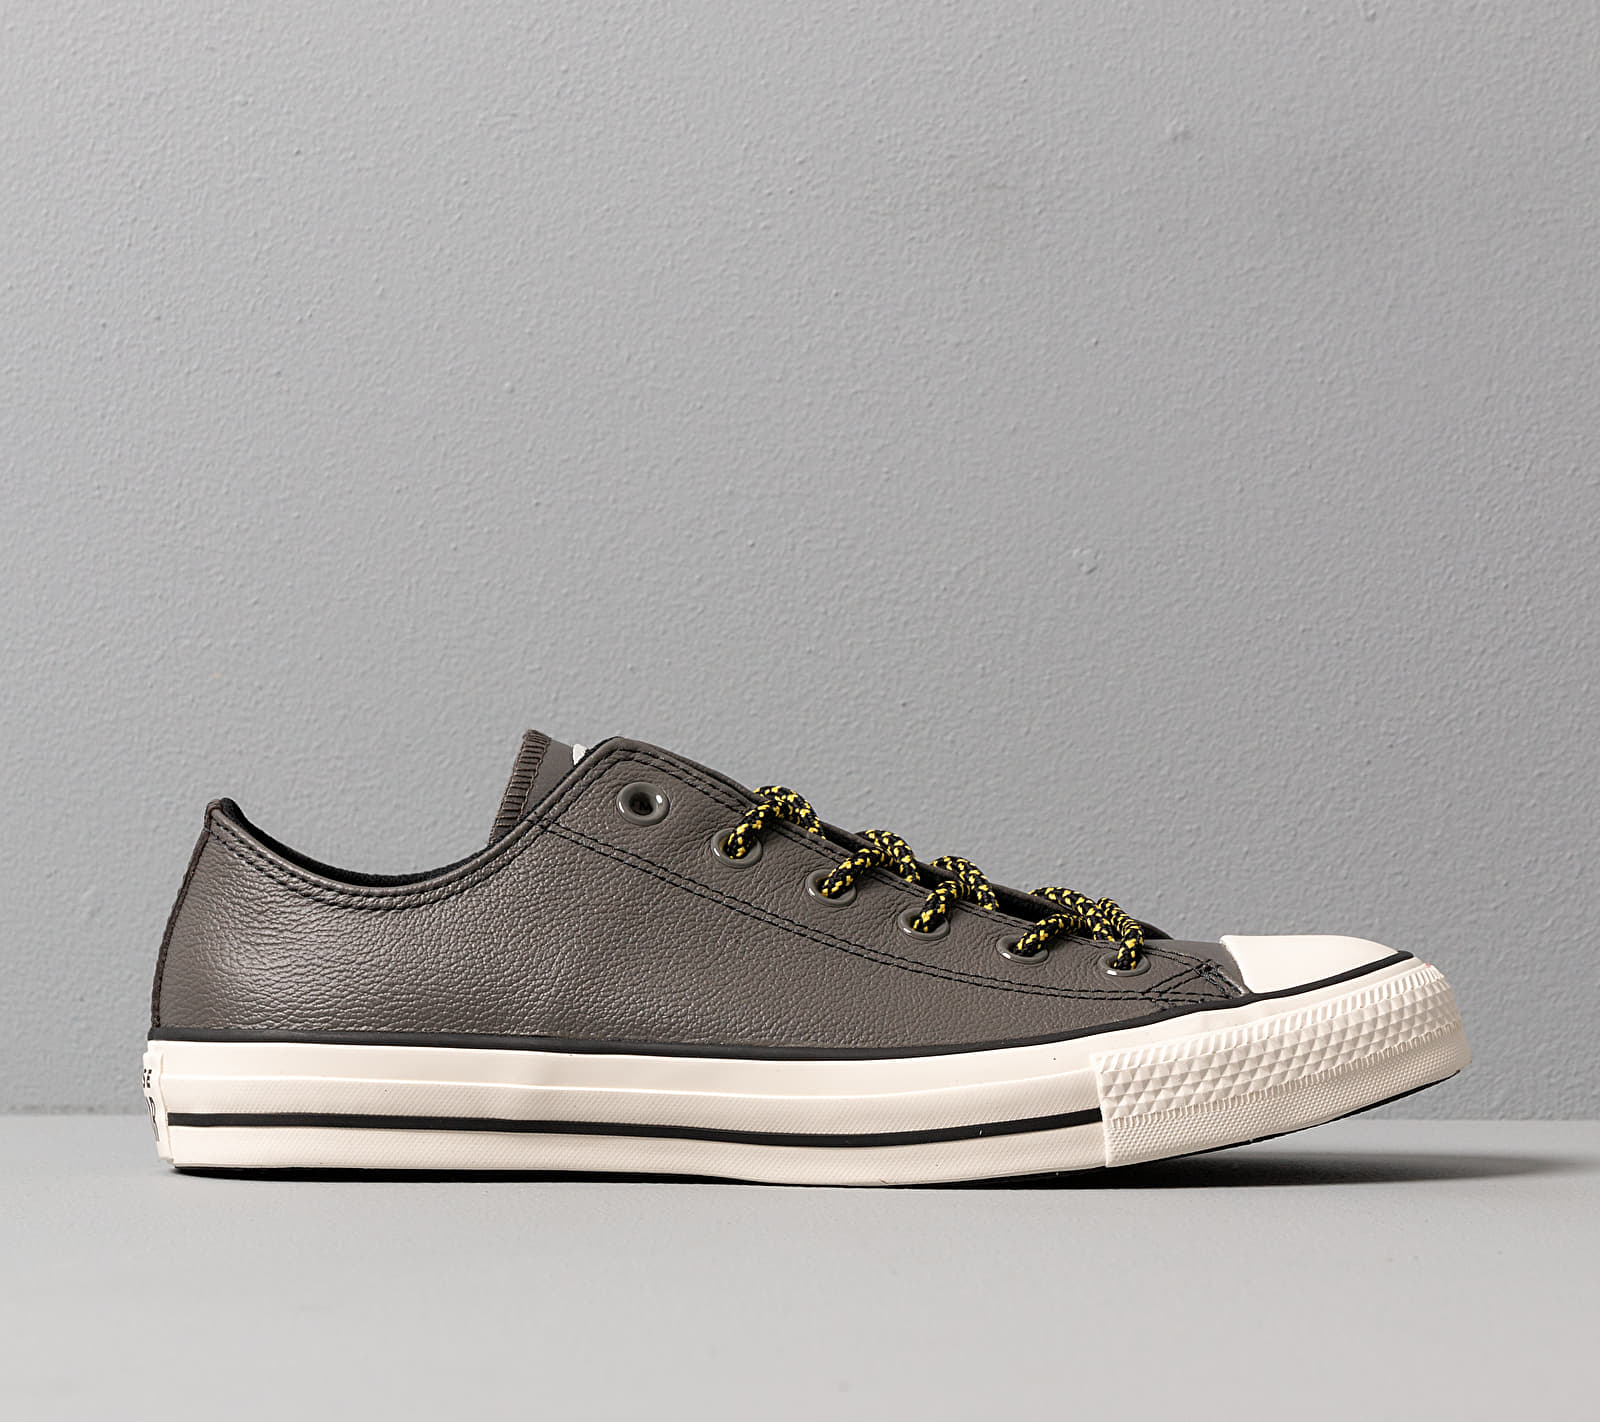 Converse Chuck Taylor All Star Archival Leather Carbon Grey/ Vivid Sulfur/ Egret, Gray